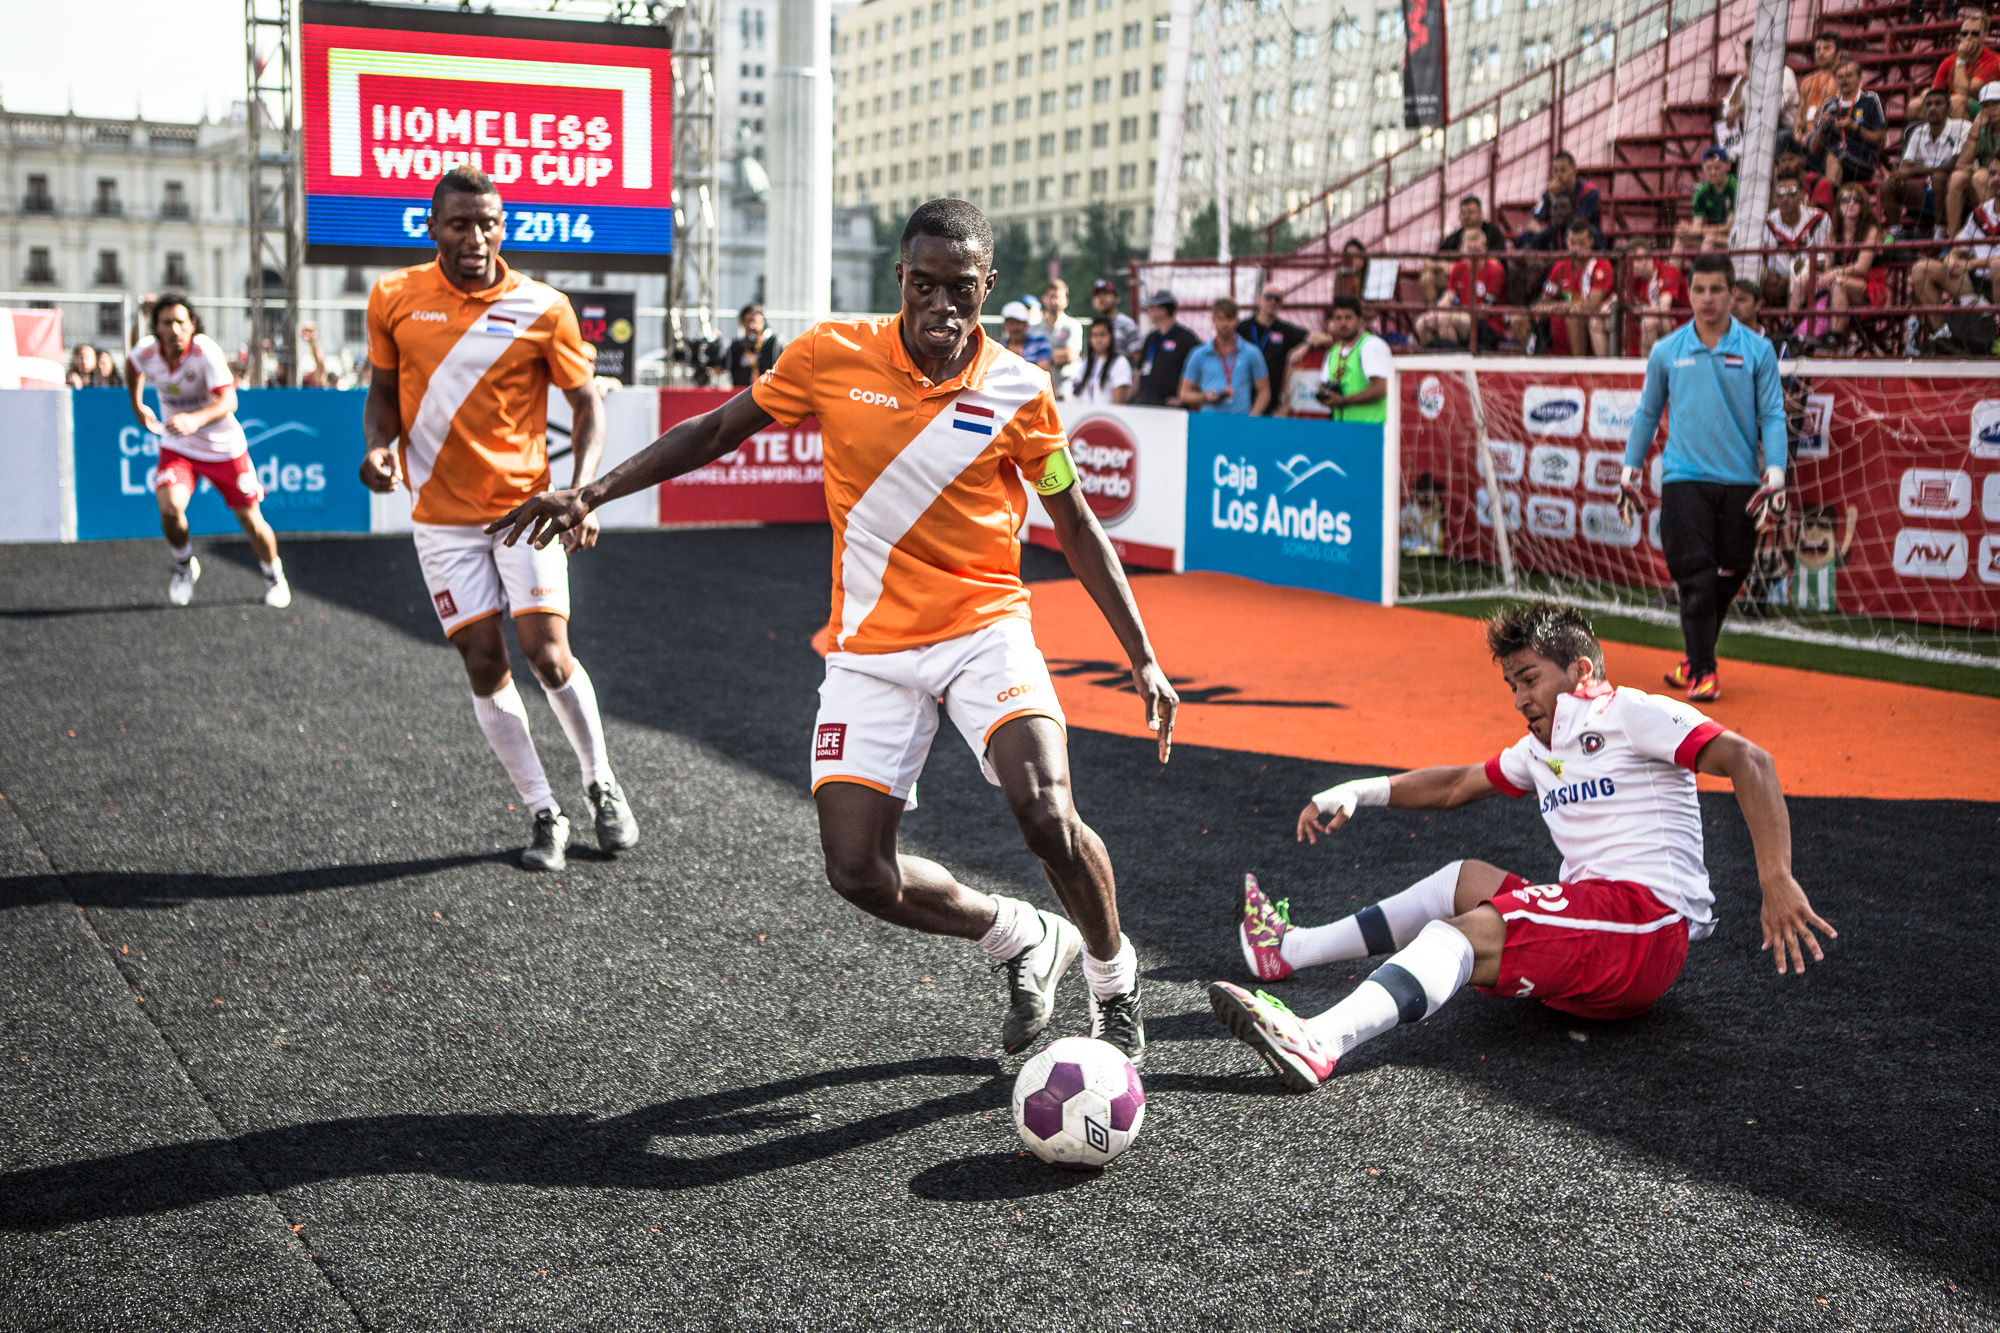 A player from team Netherlands tackles his Chilean opponent in the quarter finals of the tournament. Although these games are highly competitive with the players desperate to win the title, the ethos of the tournament is in the forefront of everyone's minds. If a foul is committed, the player will make sure to pick up his opponent, and make amends before play continues.  It is the indescribable camaraderie that adds to this competitions unique and inspiring nature. The commonality shared by all players shines through in all areas of life both on and off the pitch, with lack of animosity between even the most politically hostile countries.